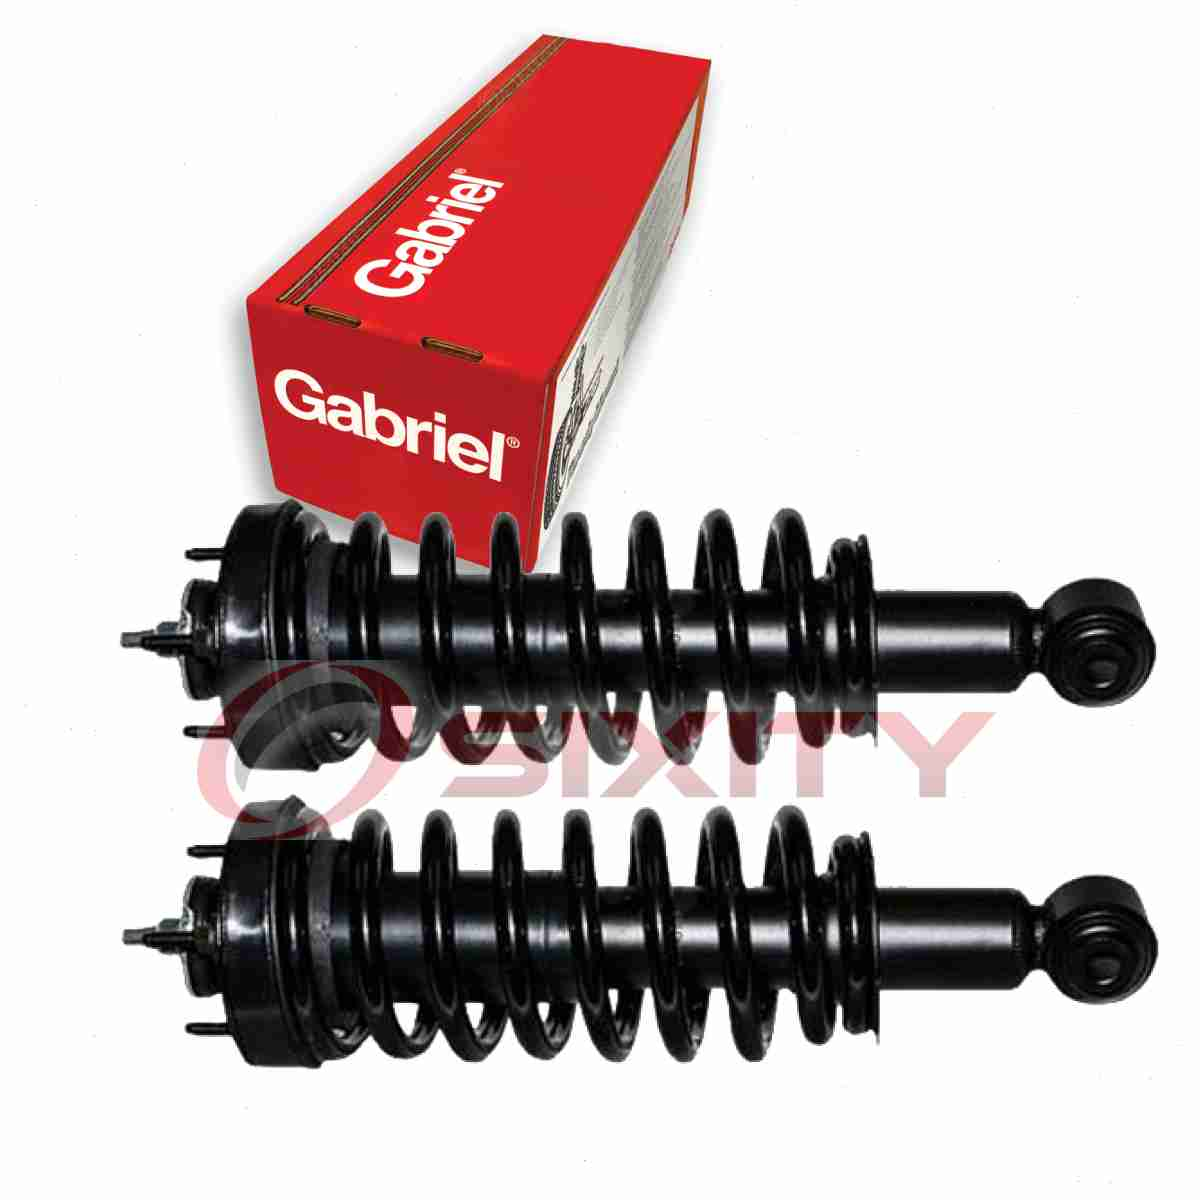 Gabriel Front Right Strut: 2 Pc Gabriel Front Fully Loaded Strut For 2003-2011 Ford